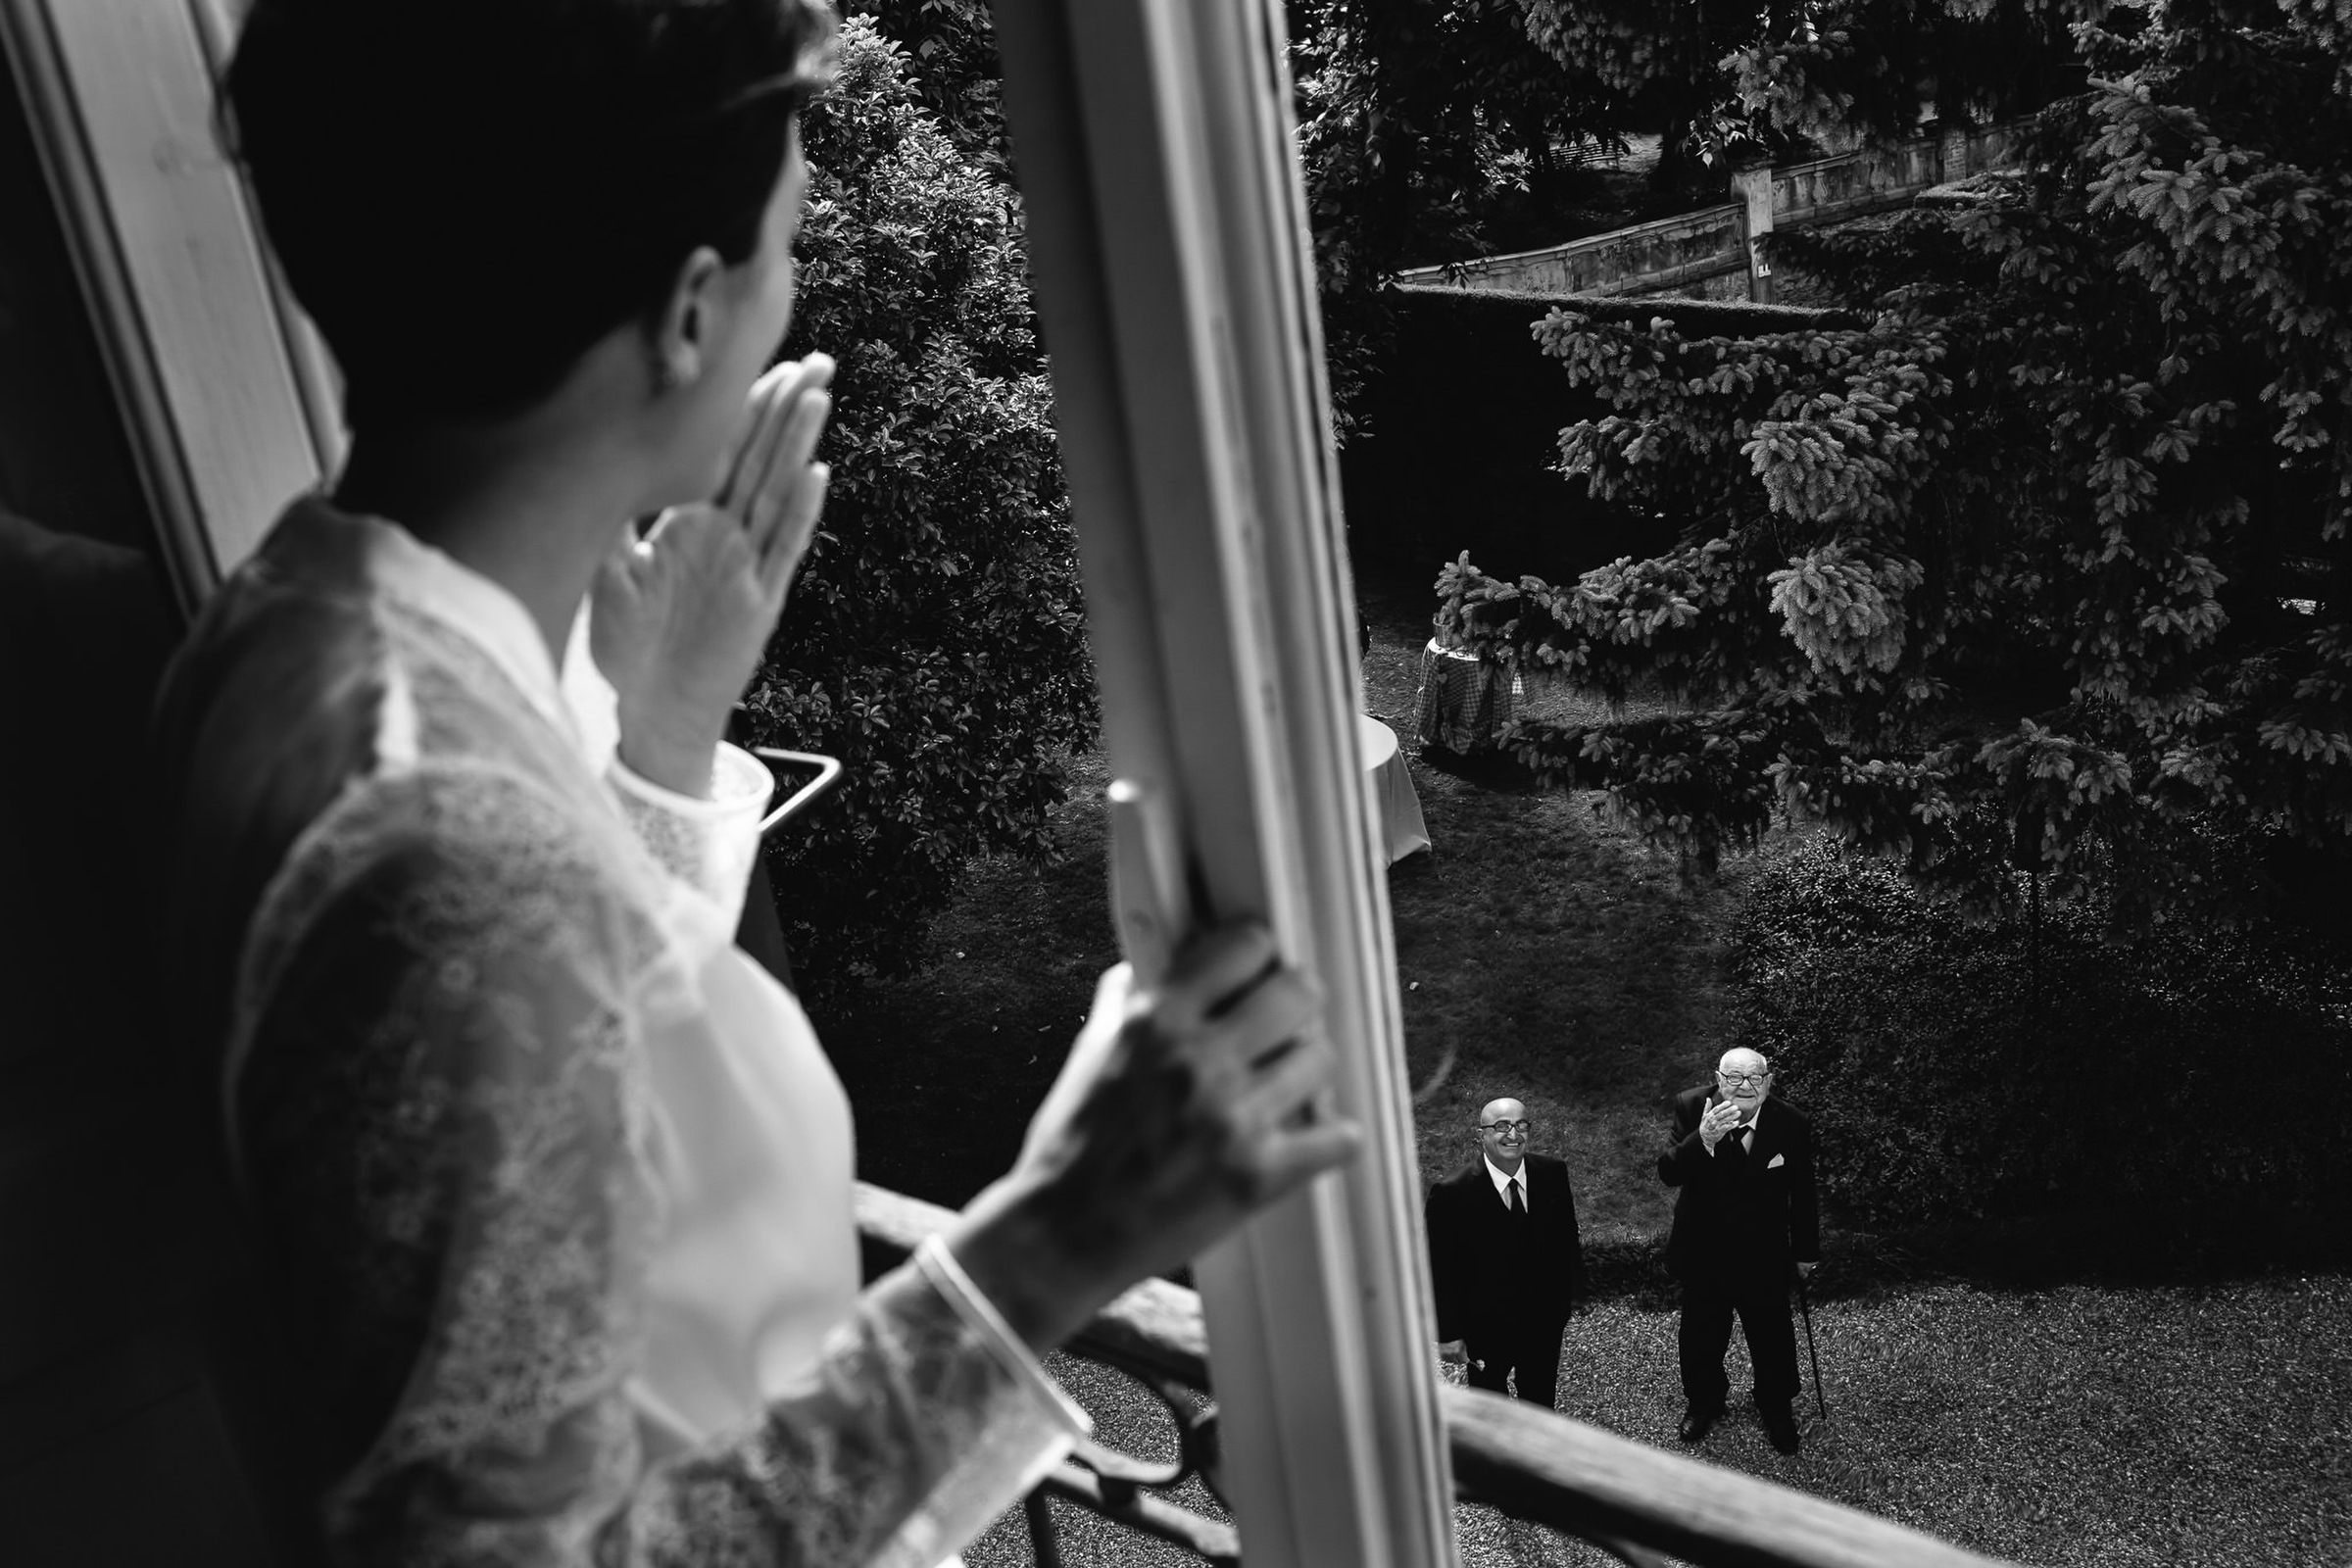 Bride blowing a kiss from the window - photo by Julian Kanz Photography